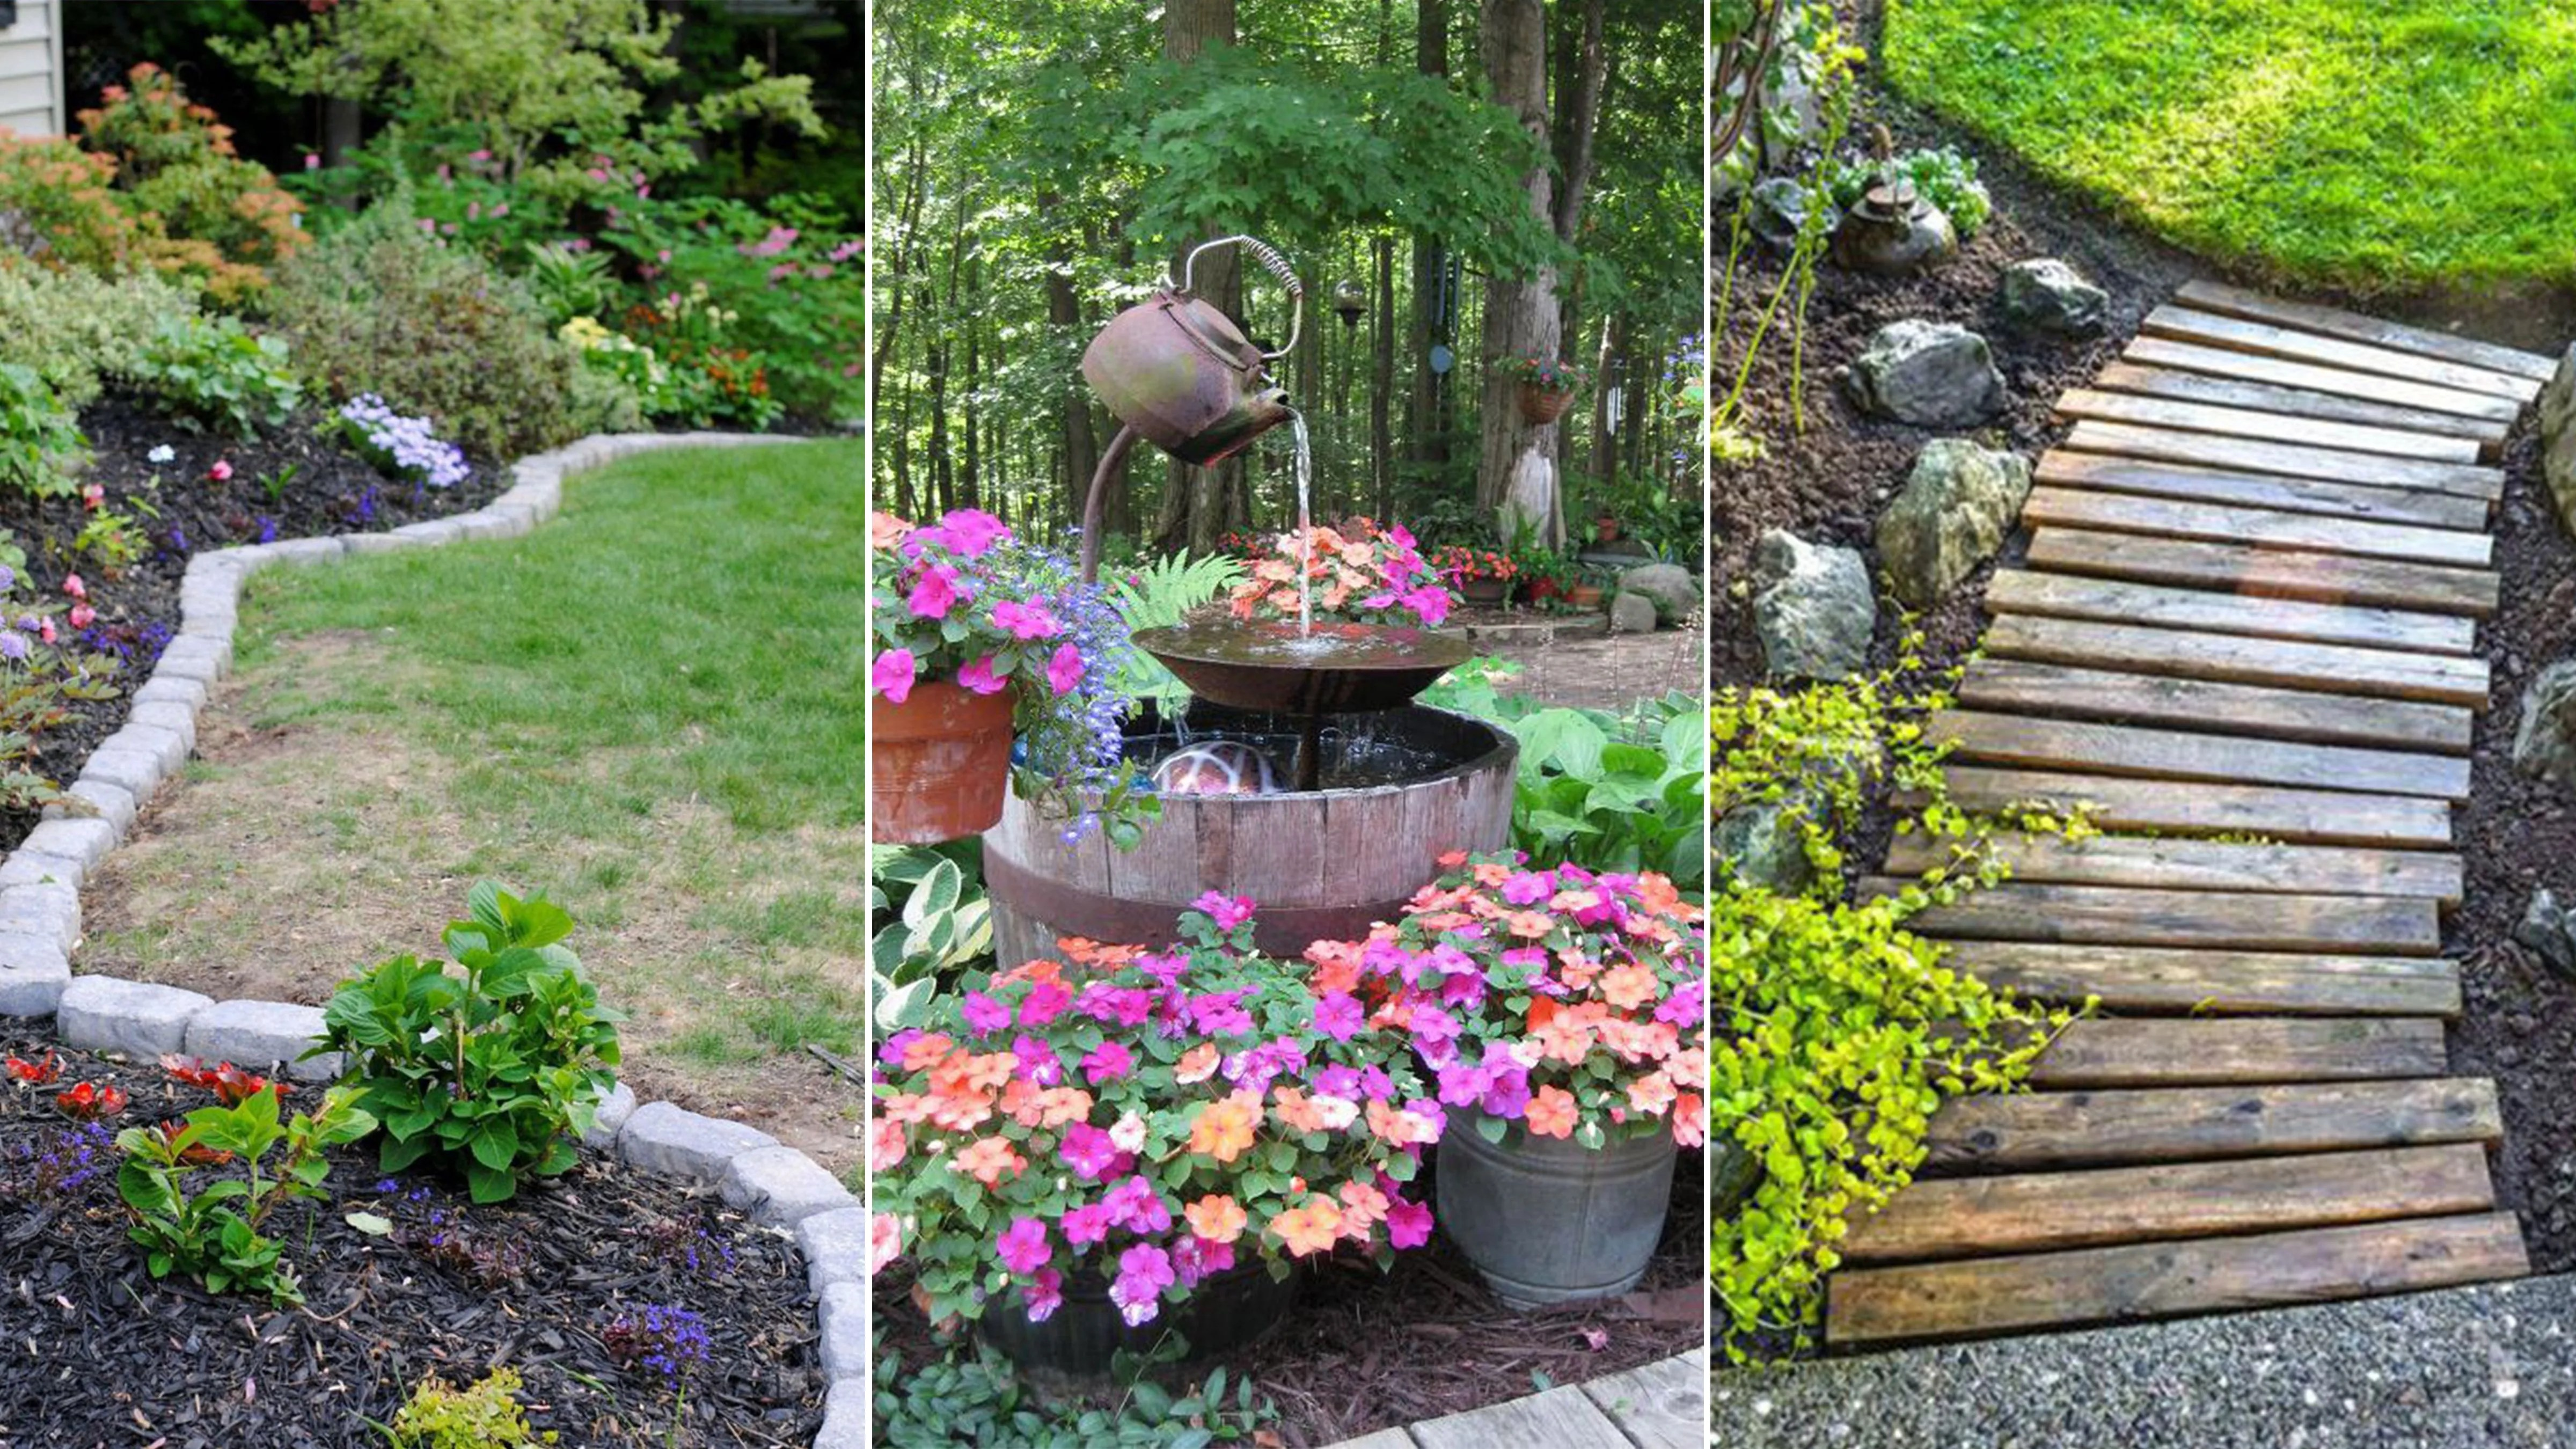 14 Cheap Landscaping Ideas - Budget-Friendly Landscape ... on Garden Design Ideas On A Budget  id=91204